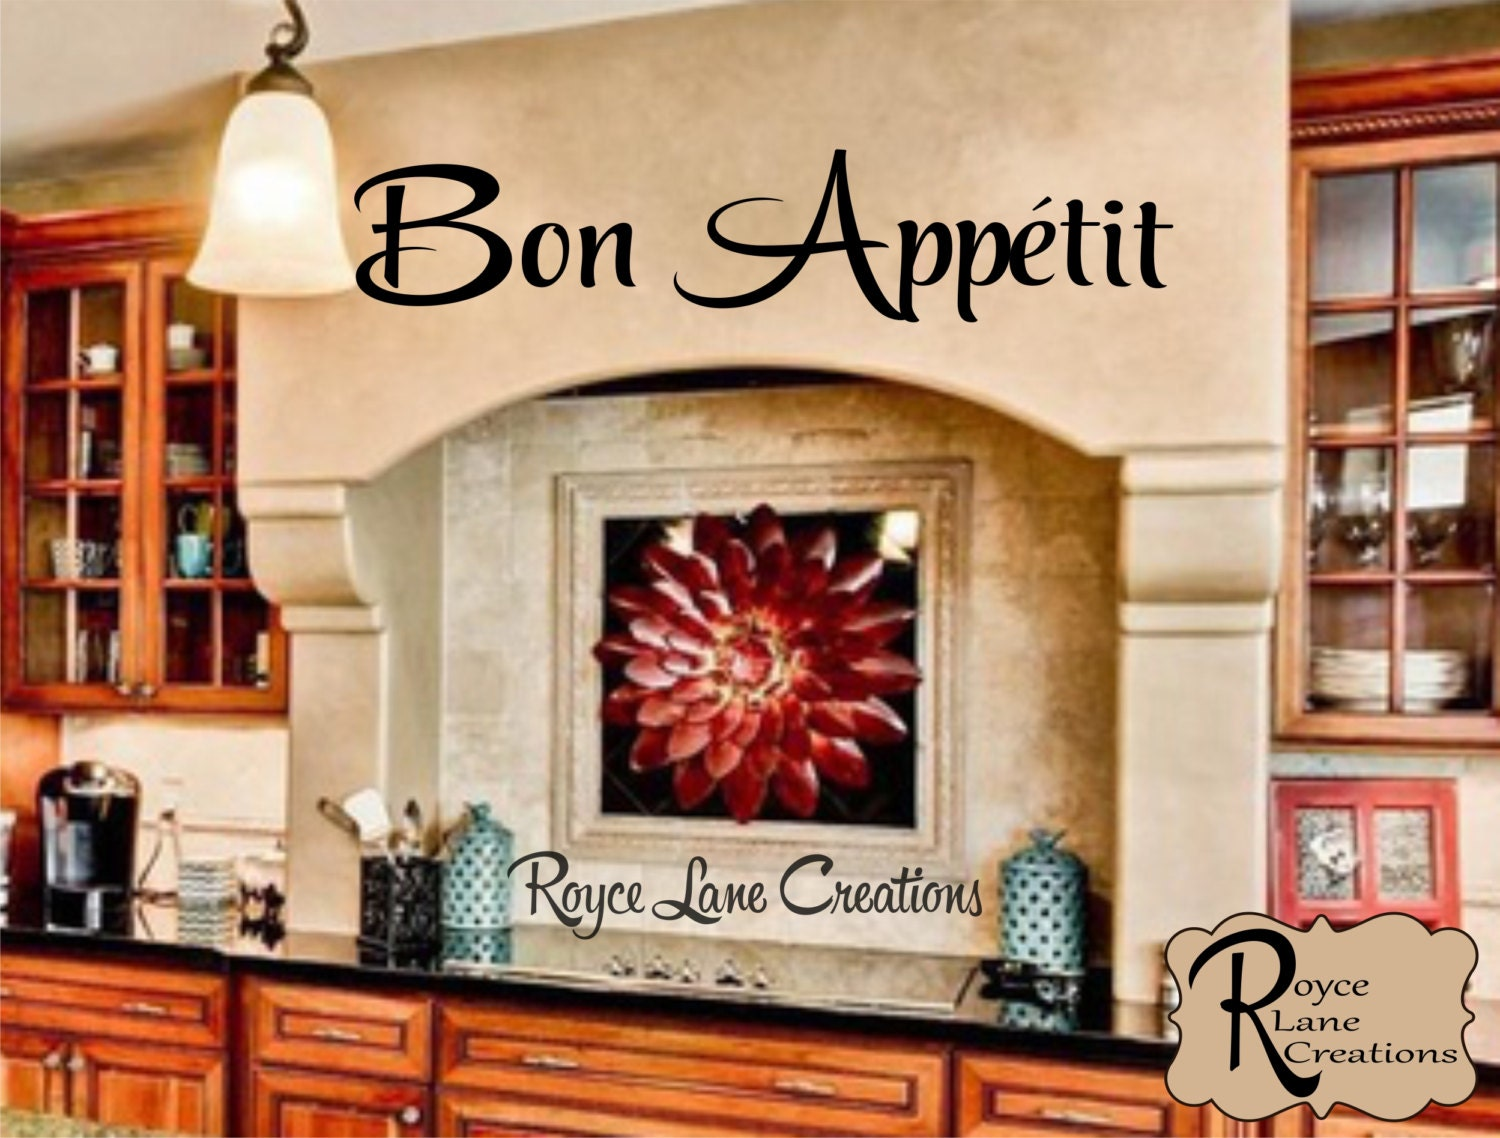 Bon Appetit Kitchen Wall Decal-Kitchen Wall Decal Bon